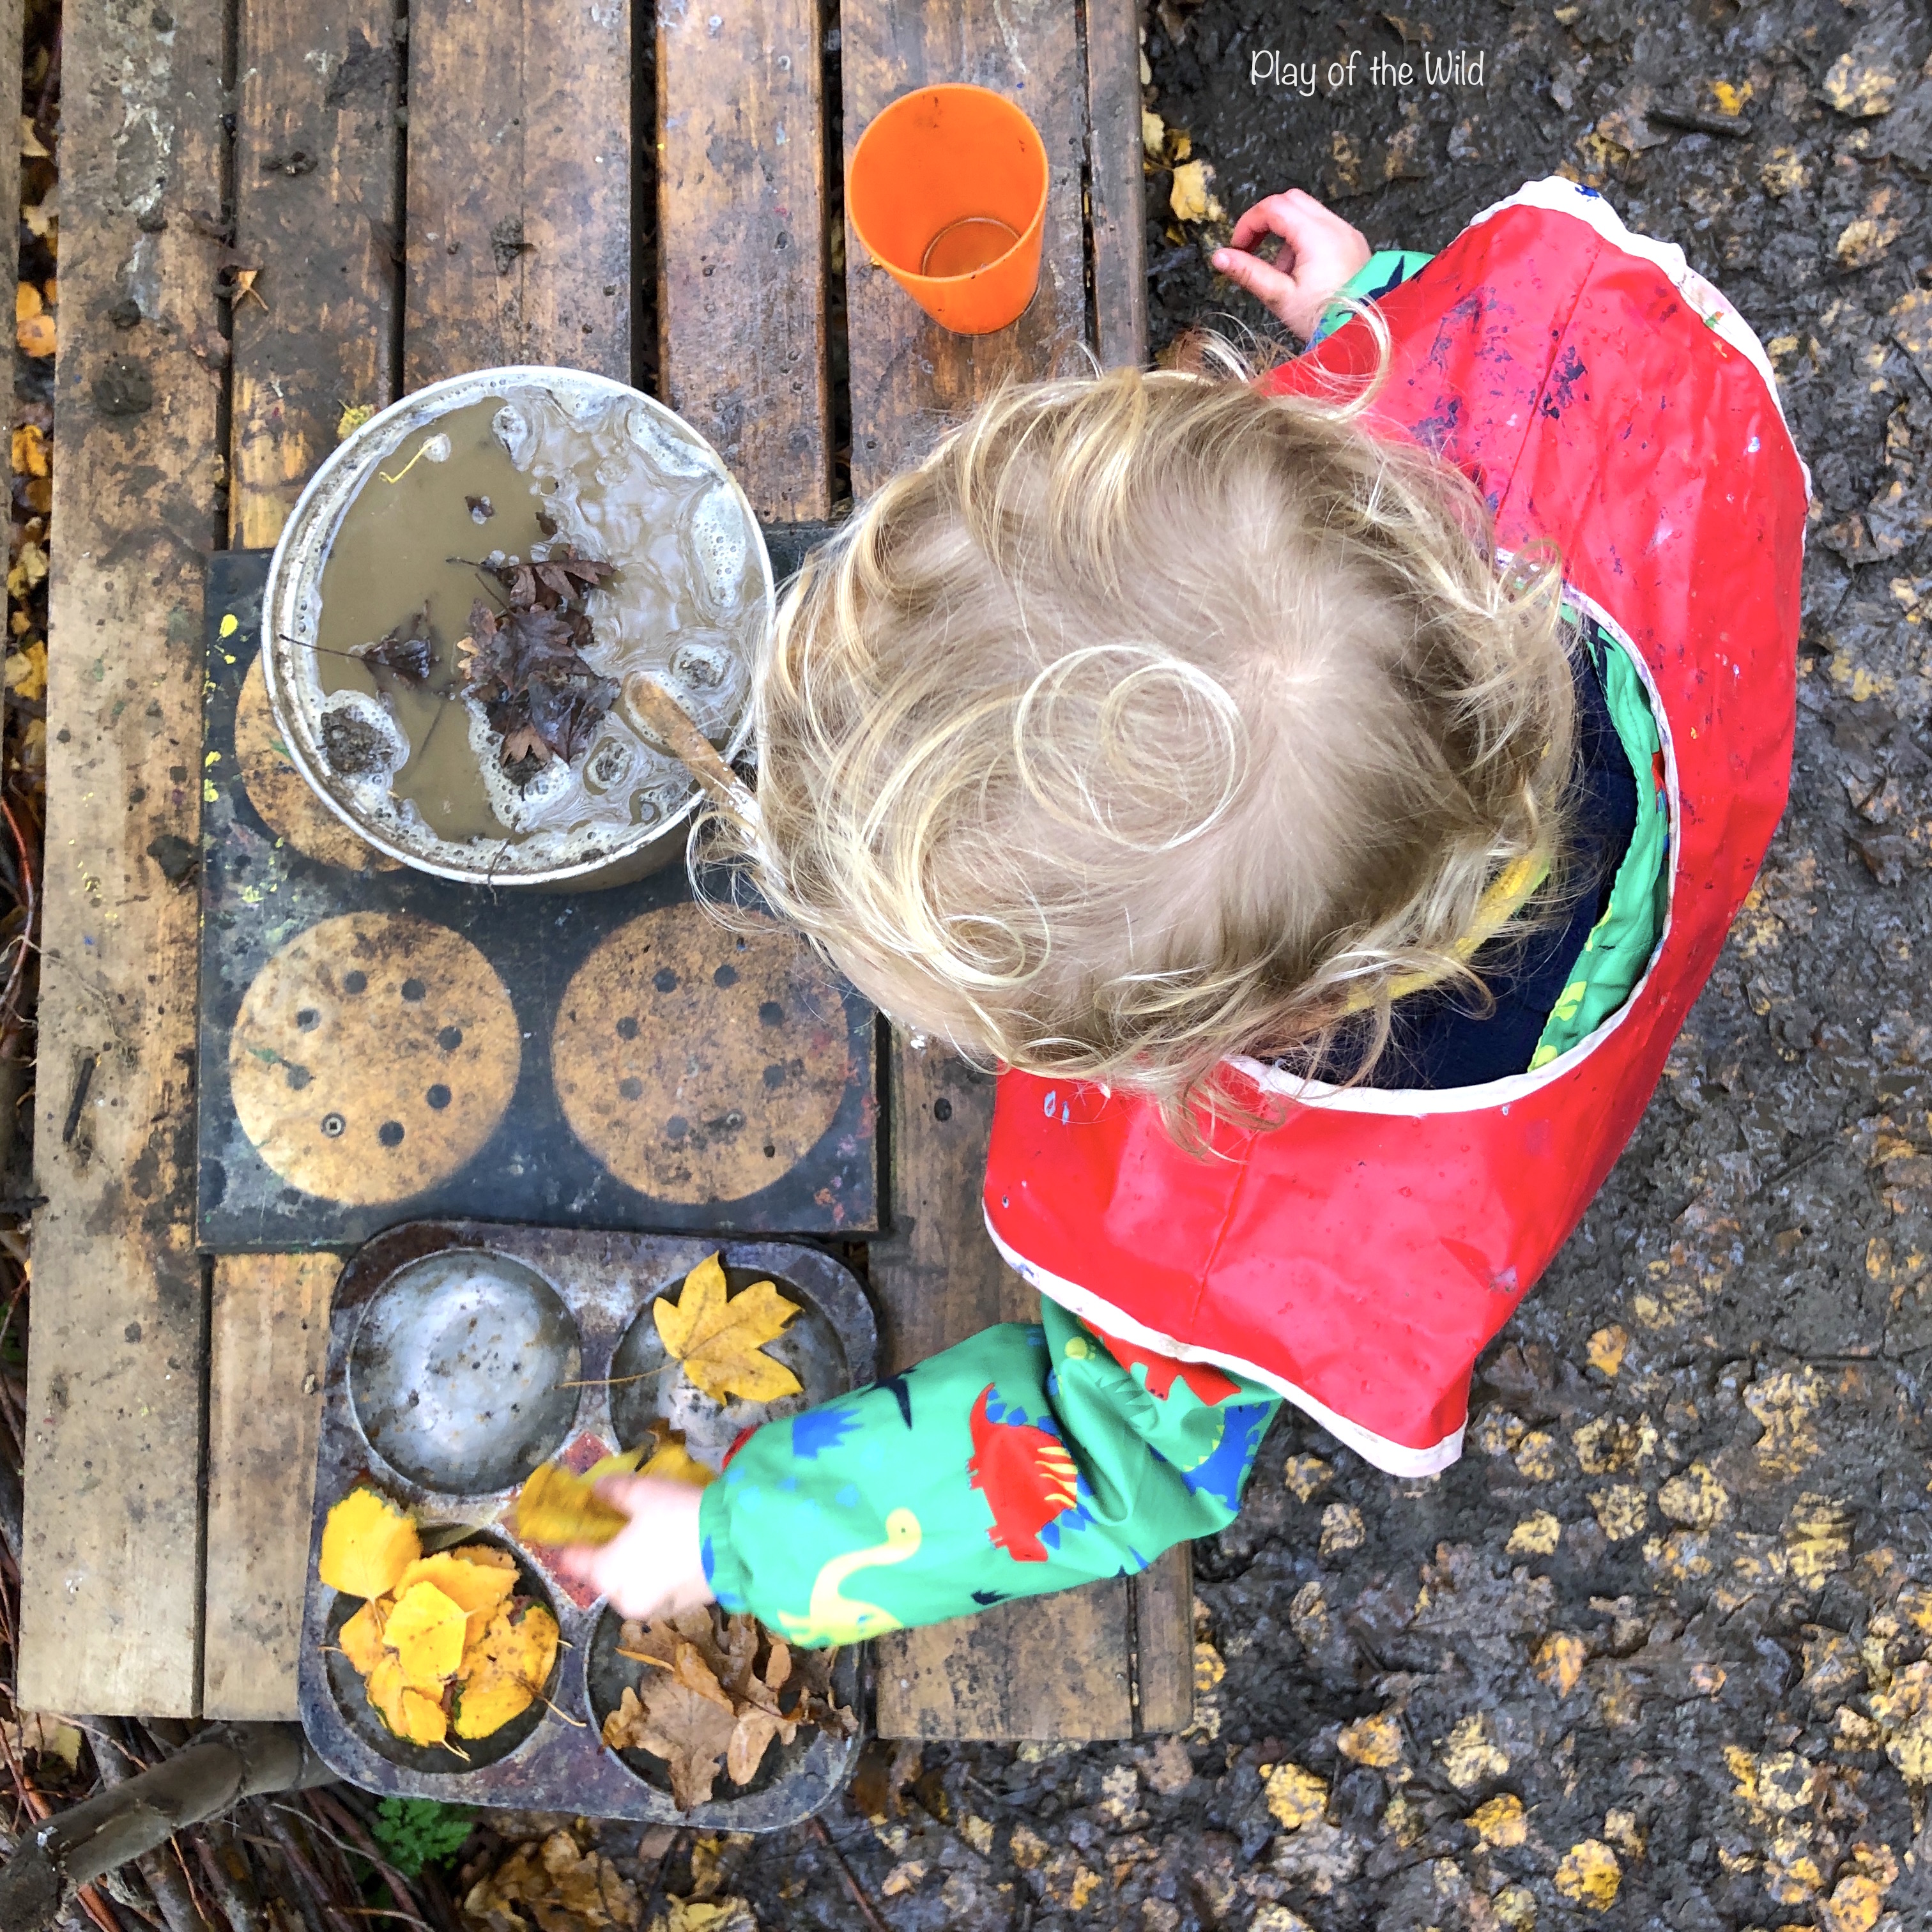 Benefits of loose parts play and mud kith